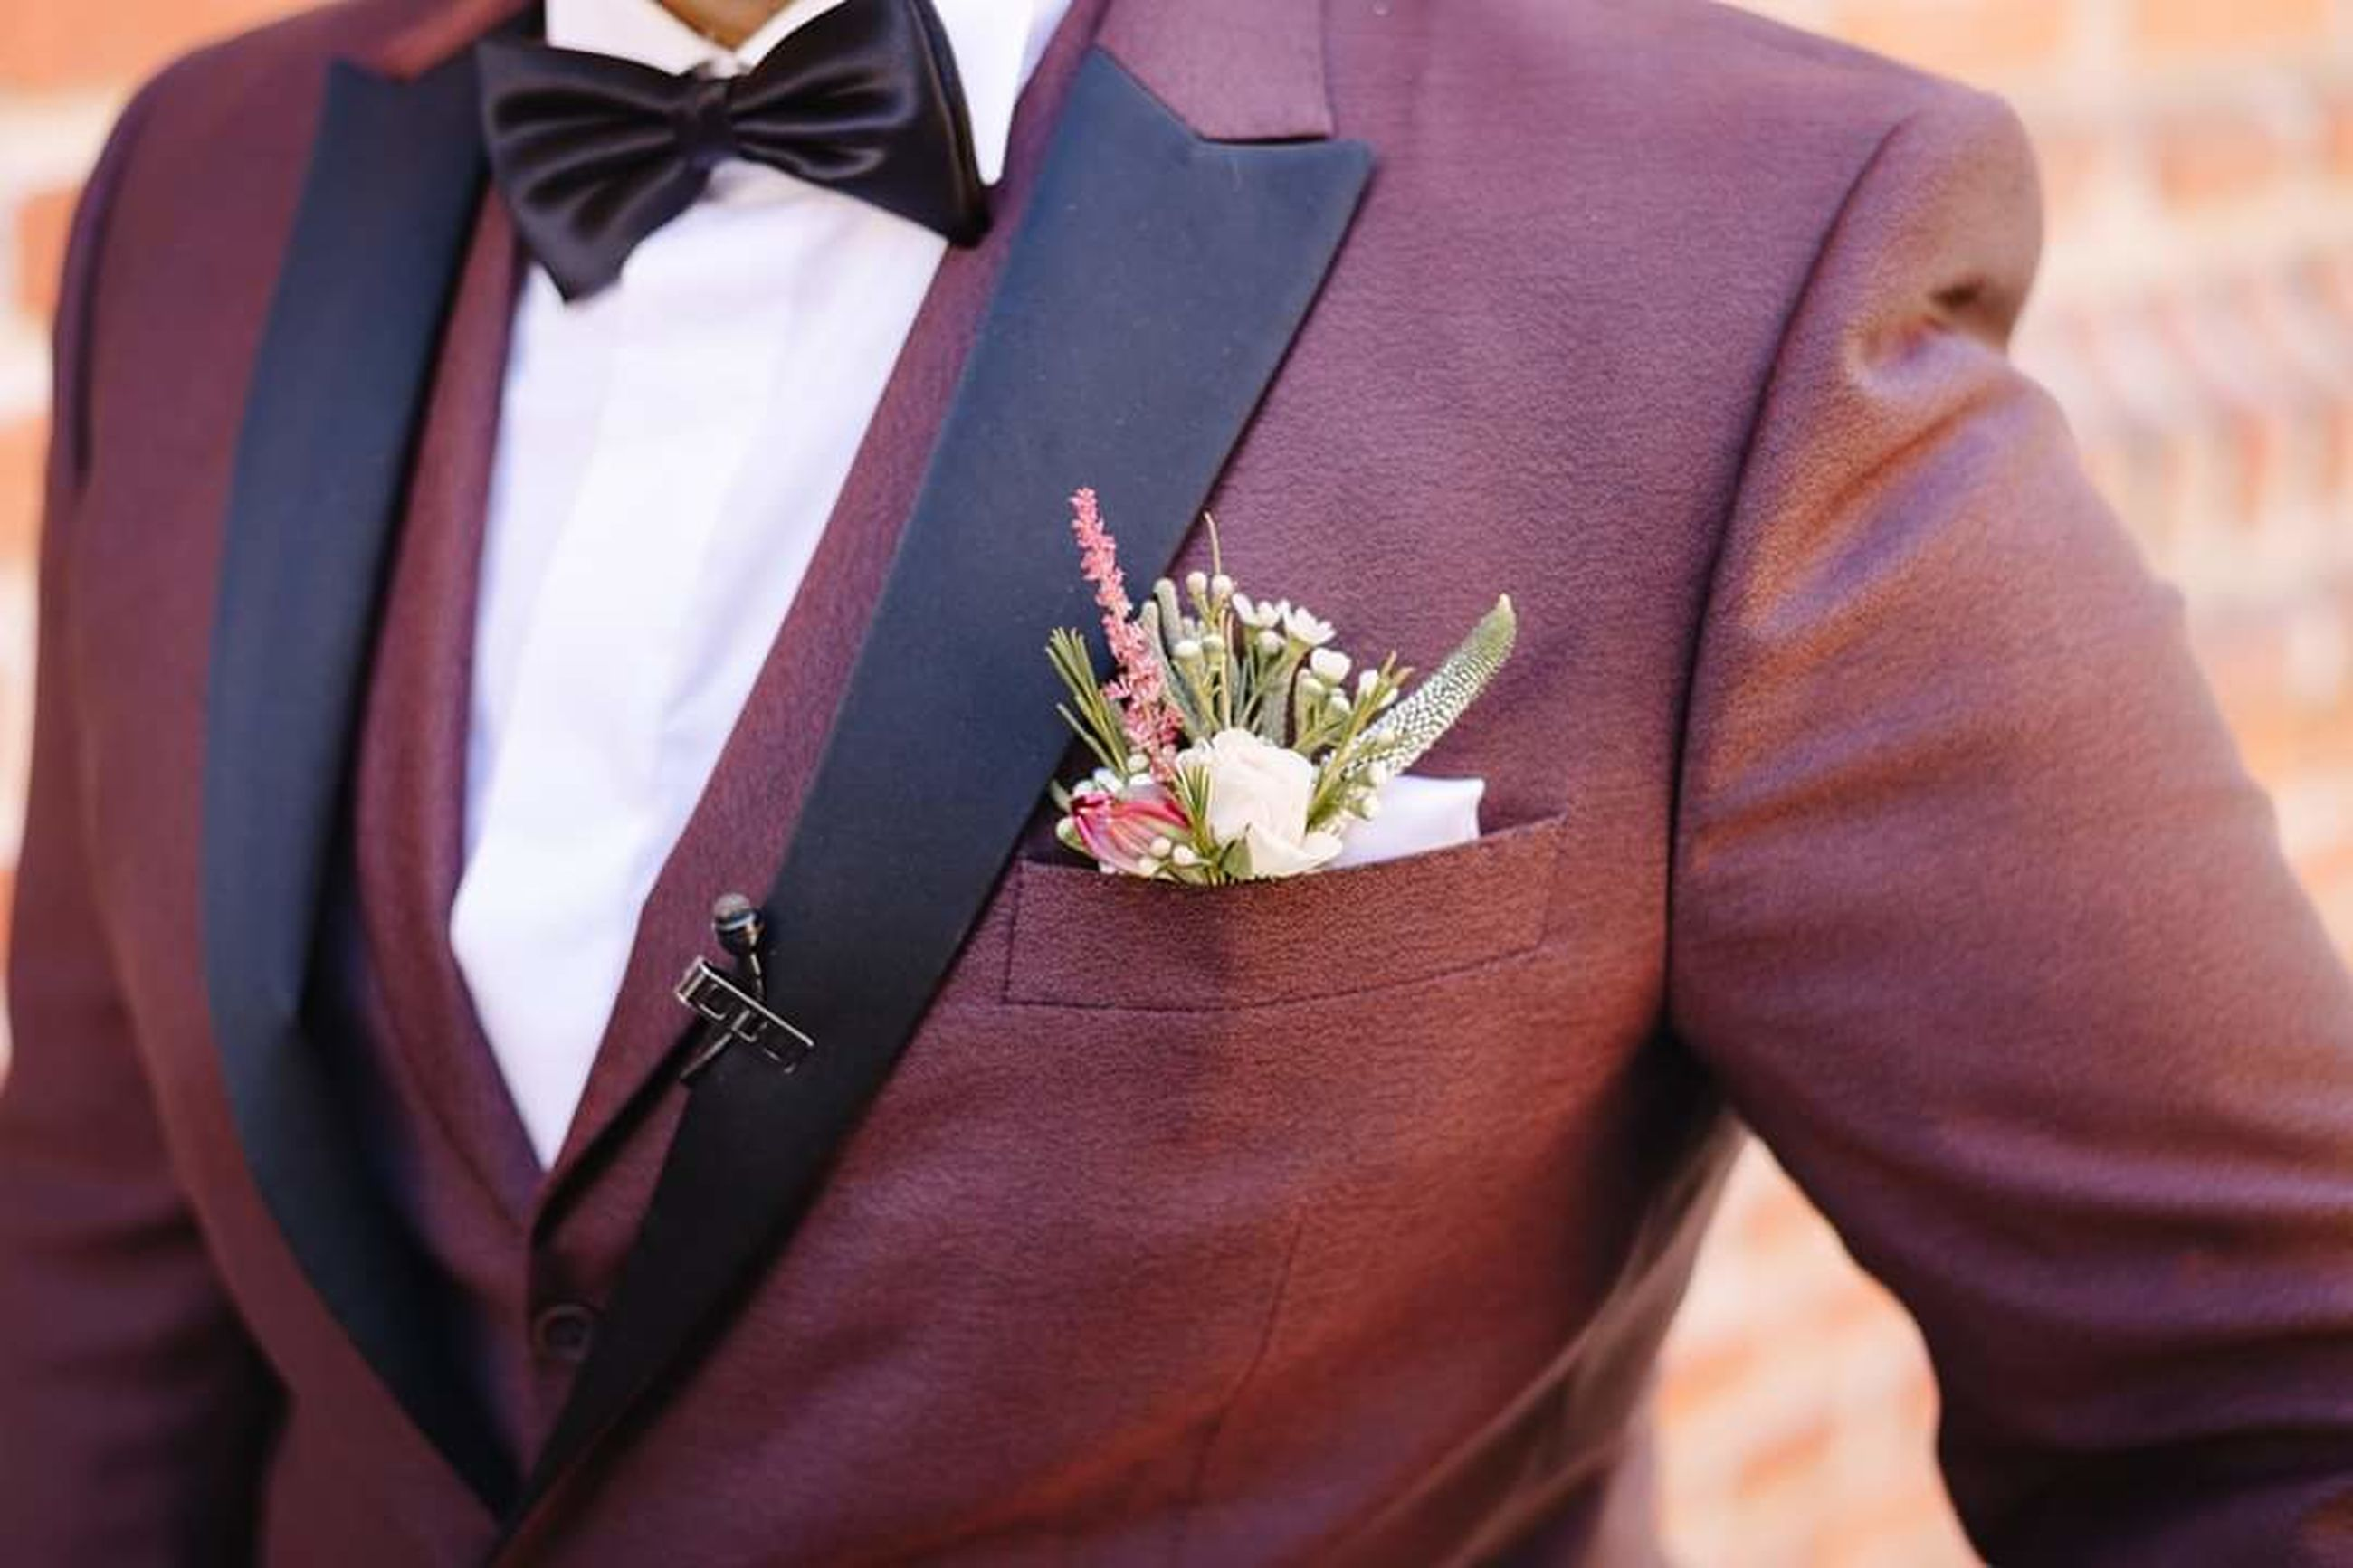 suit, midsection, flower, life events, bride, well-dressed, wedding, clothing, event, men, married, flowering plant, celebration, adult, newlywed, real people, bridegroom, formalwear, standing, business, positive emotion, flower arrangement, couple - relationship, wedding ceremony